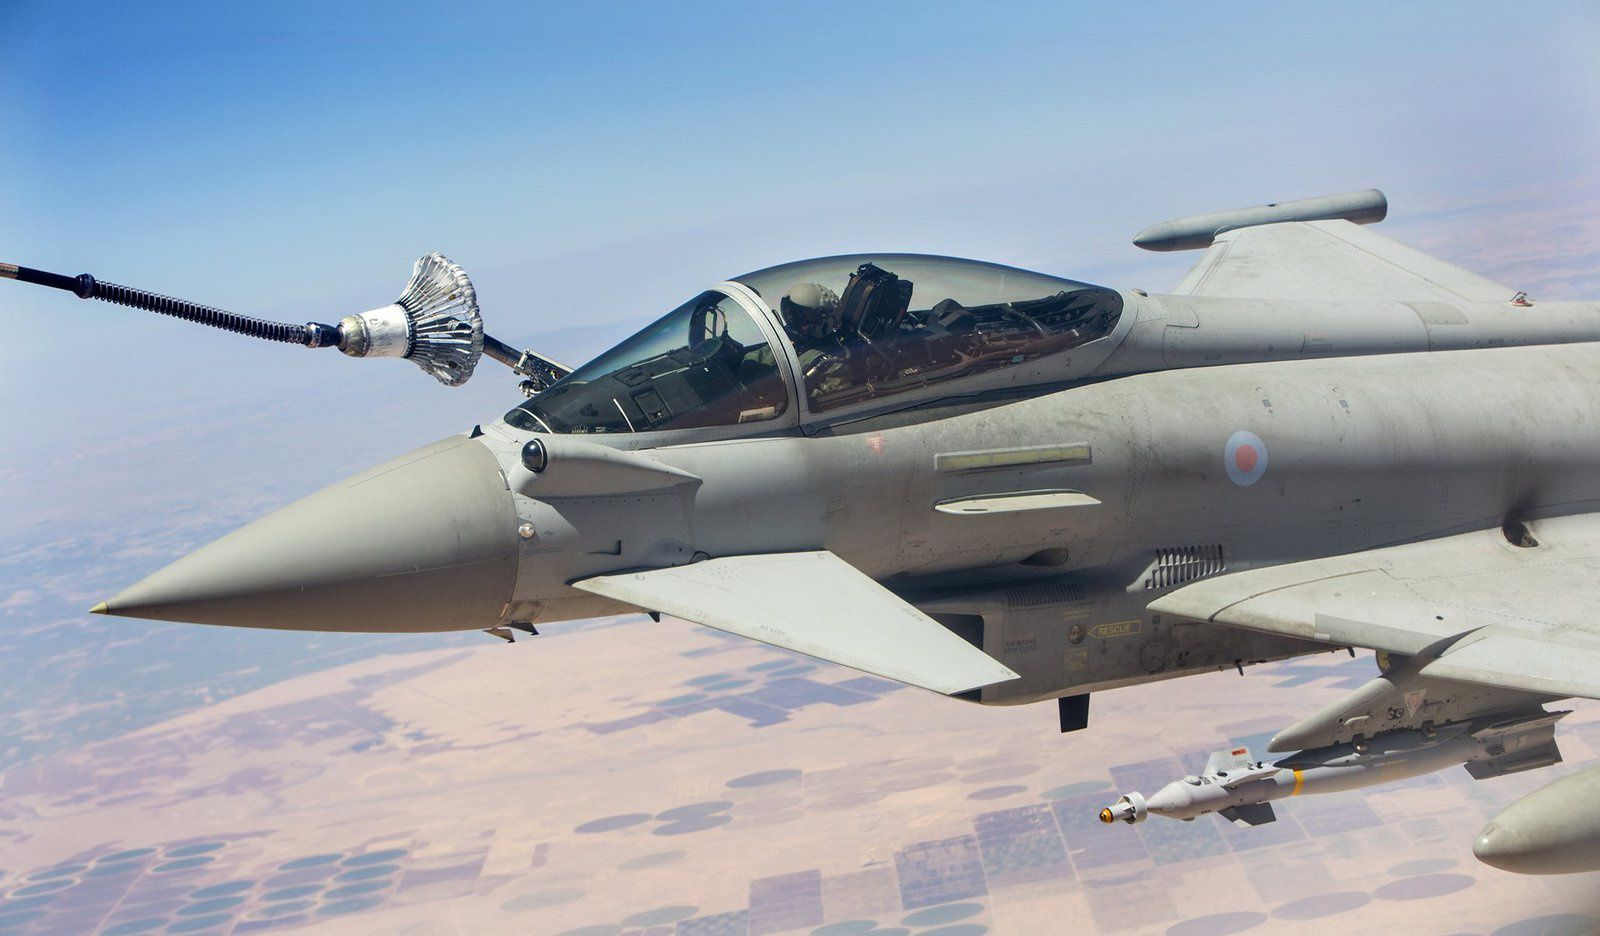 © UK MoD - Un Eurofighter Typhoon FGR.4 de la Royal Air Force au ravitaillement au-dessus du Moyen-Orient.